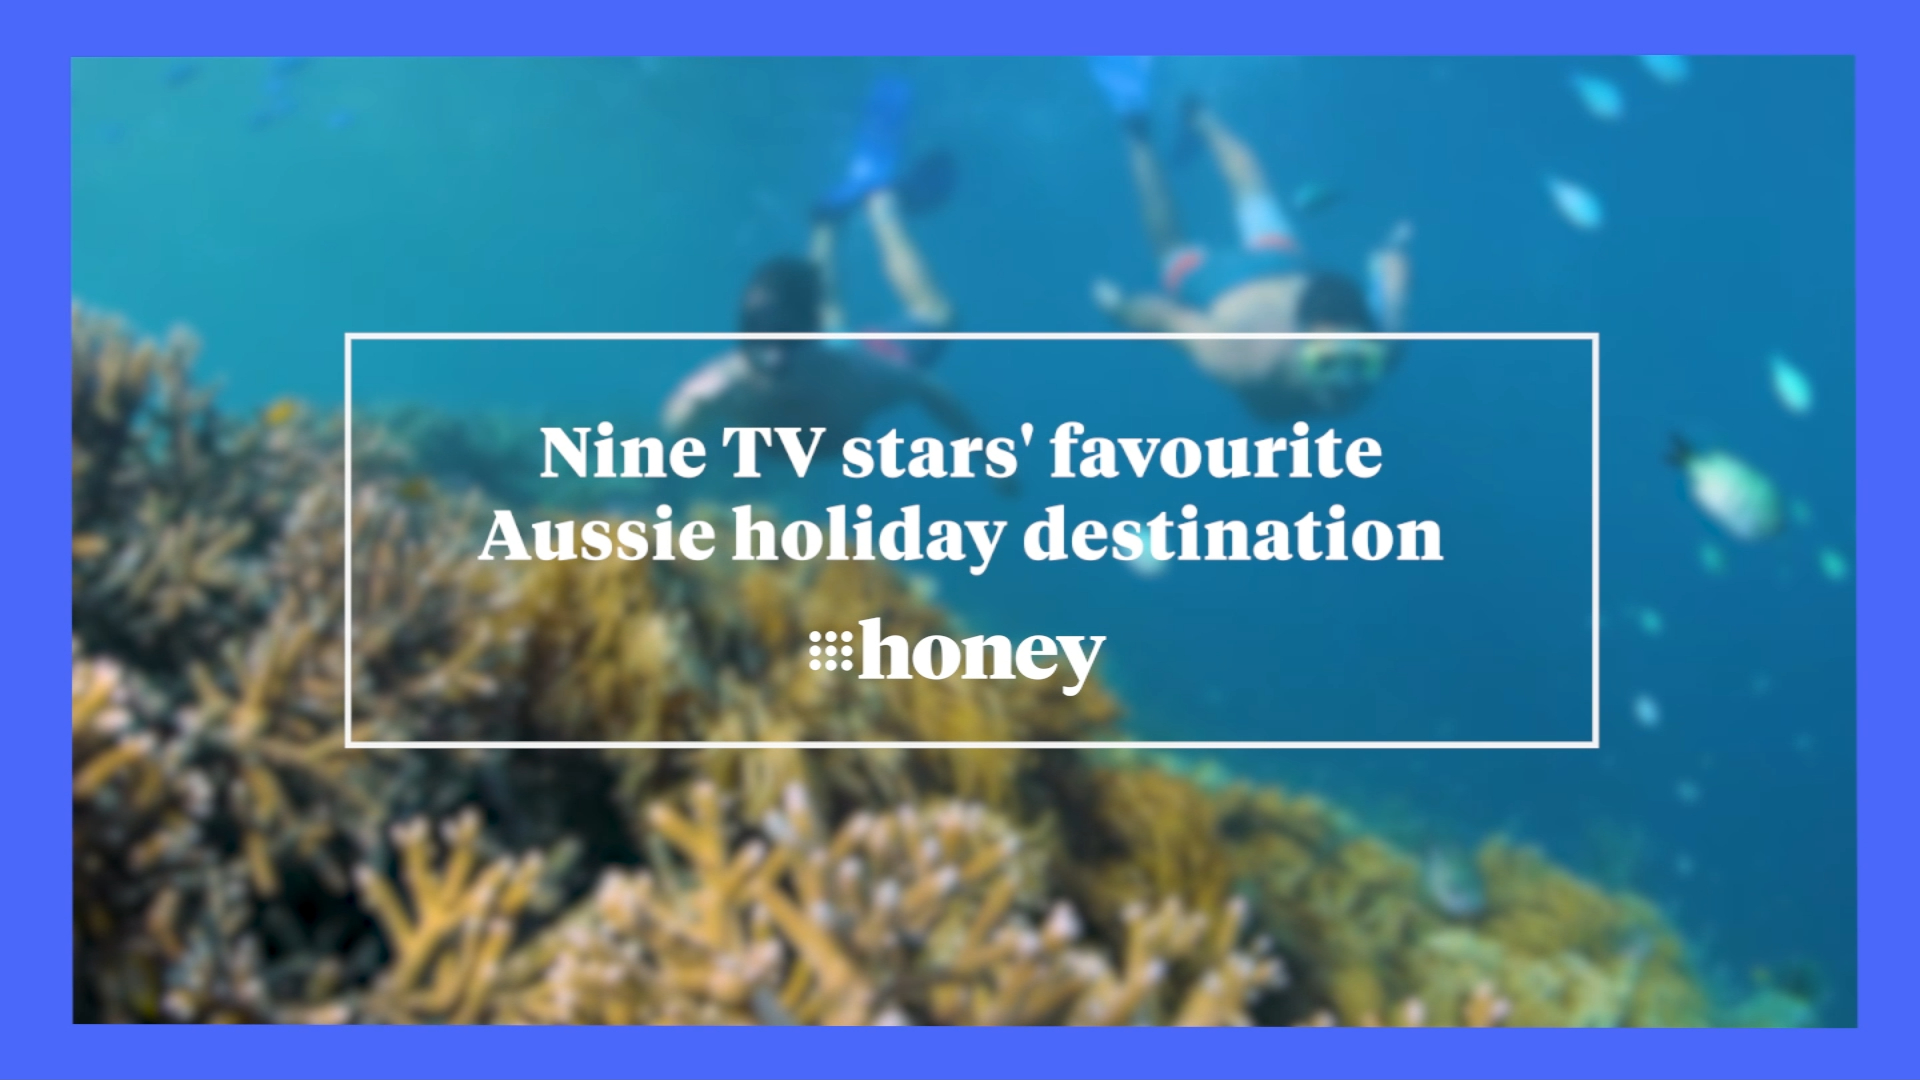 Nine TV stars' favourite Aussie holiday destination